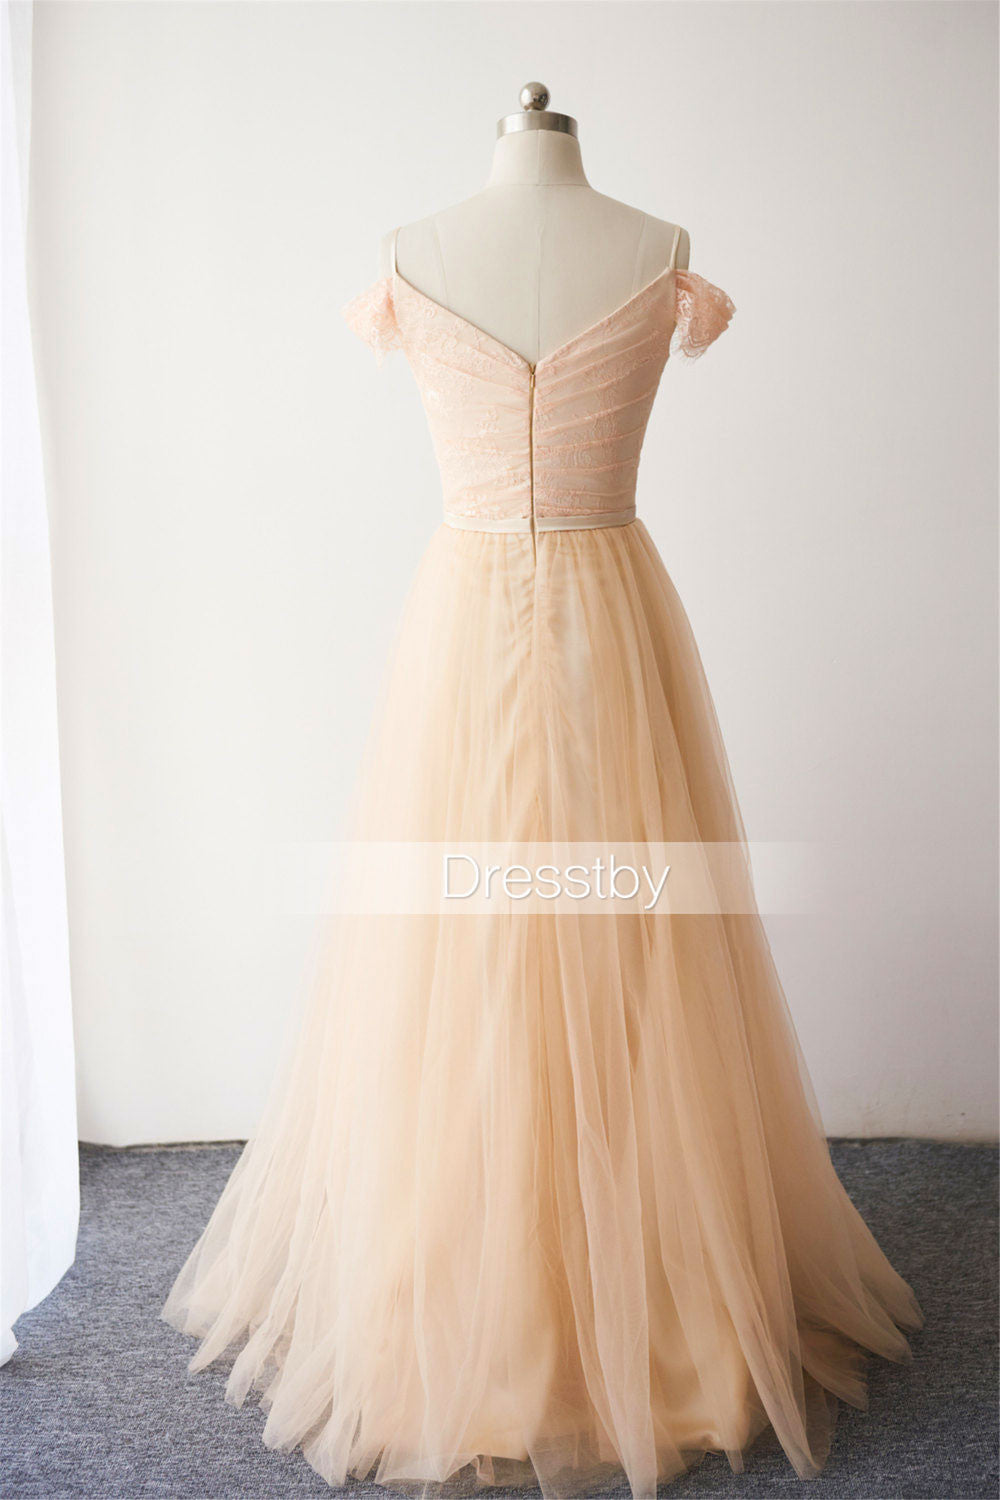 Champagne tulle lace off shoulder long prom dress bridesmaid champagne tulle lace off shoulder long prom dress bridesmaid dress ombrellifo Images